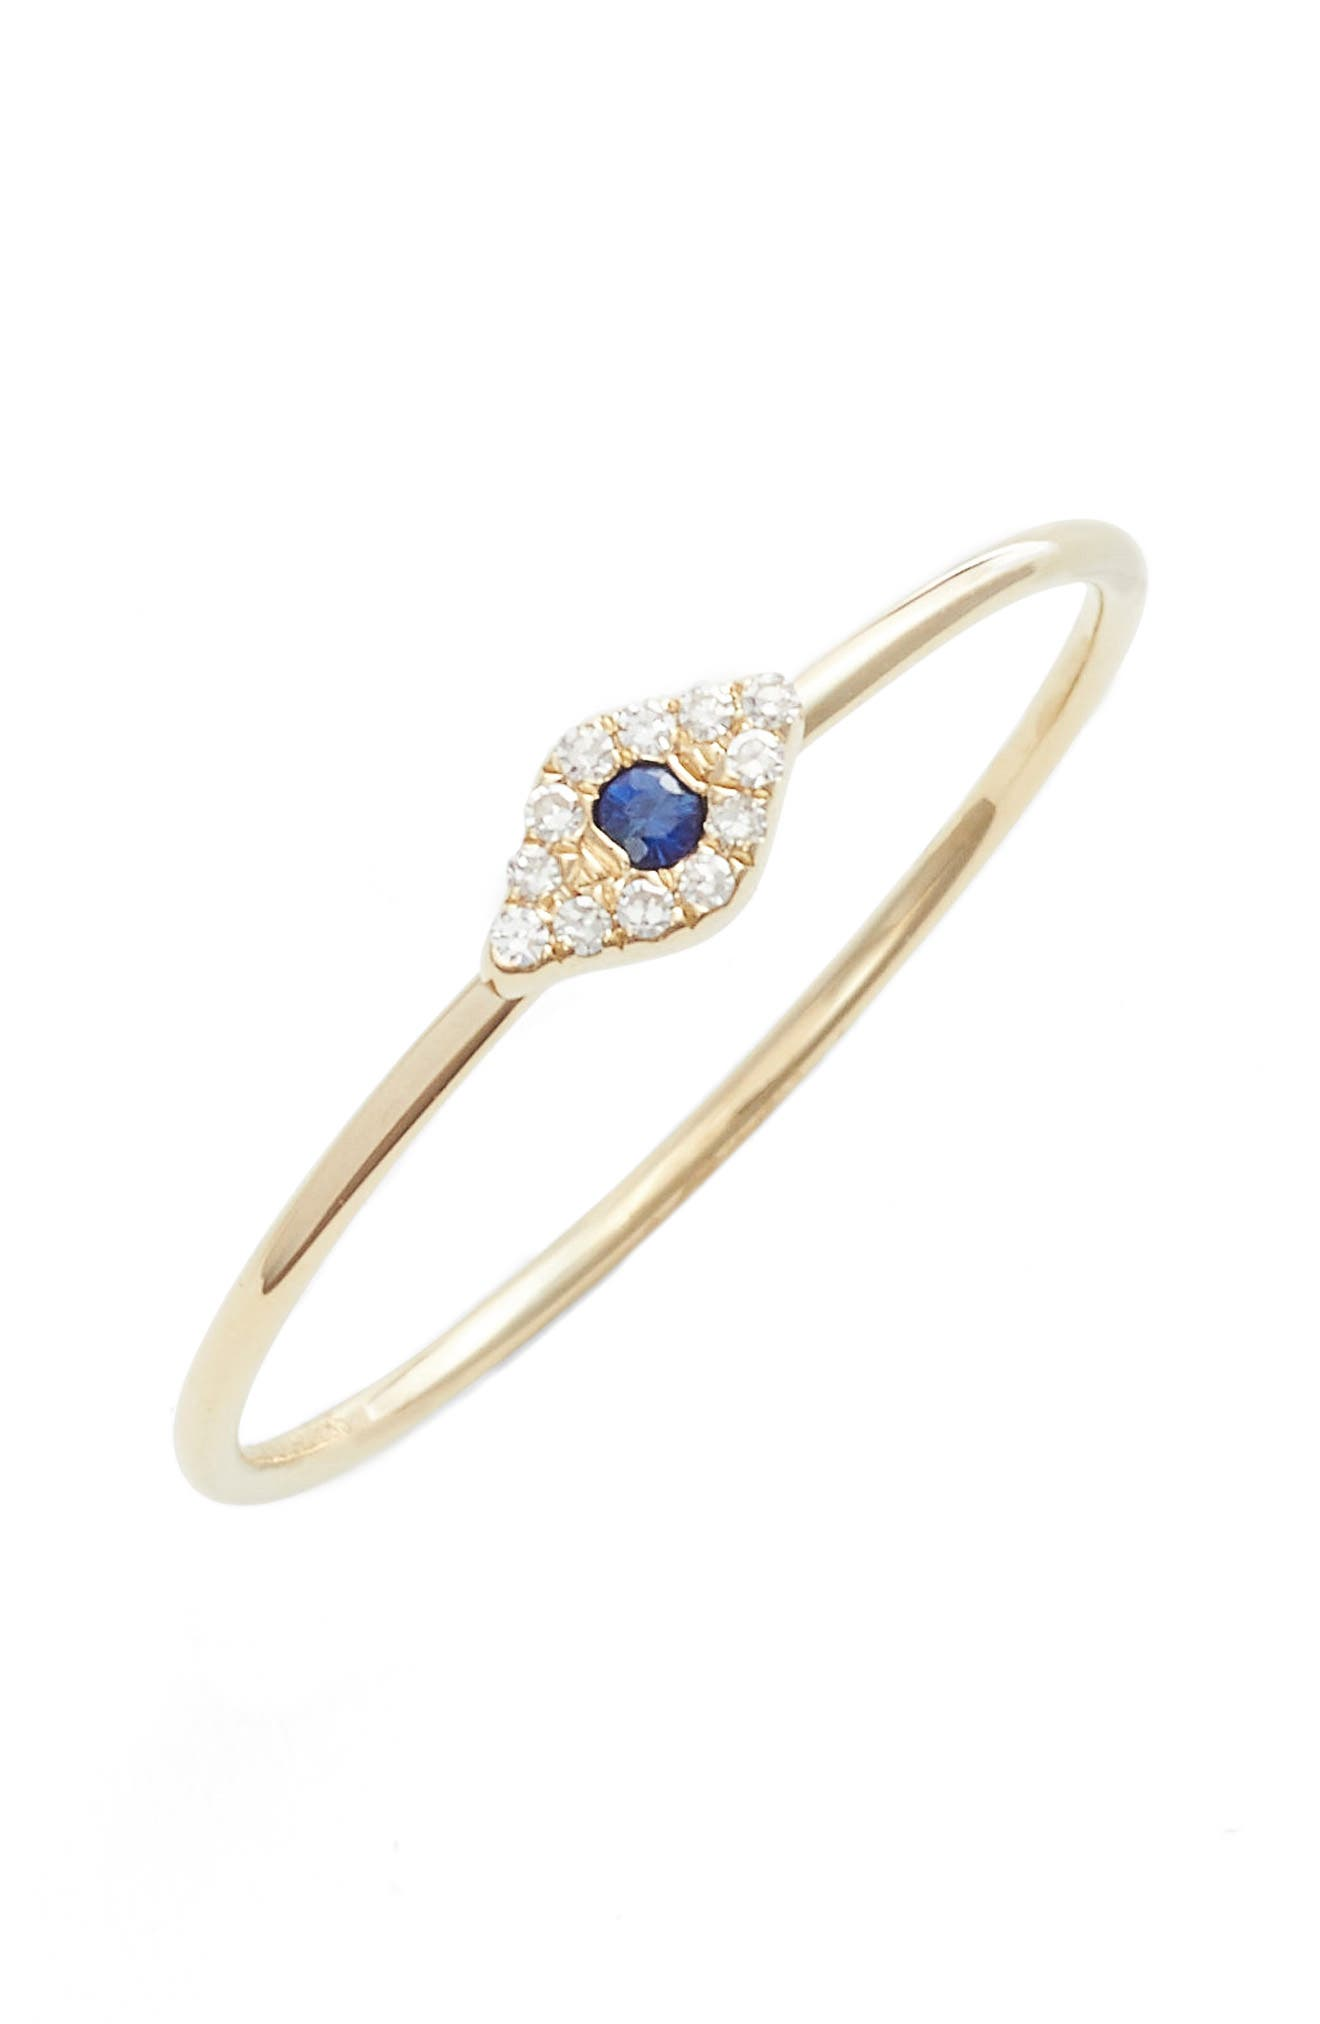 Main Image - EF COLLECTION Evil Eye Diamond & Sapphire Stack Ring